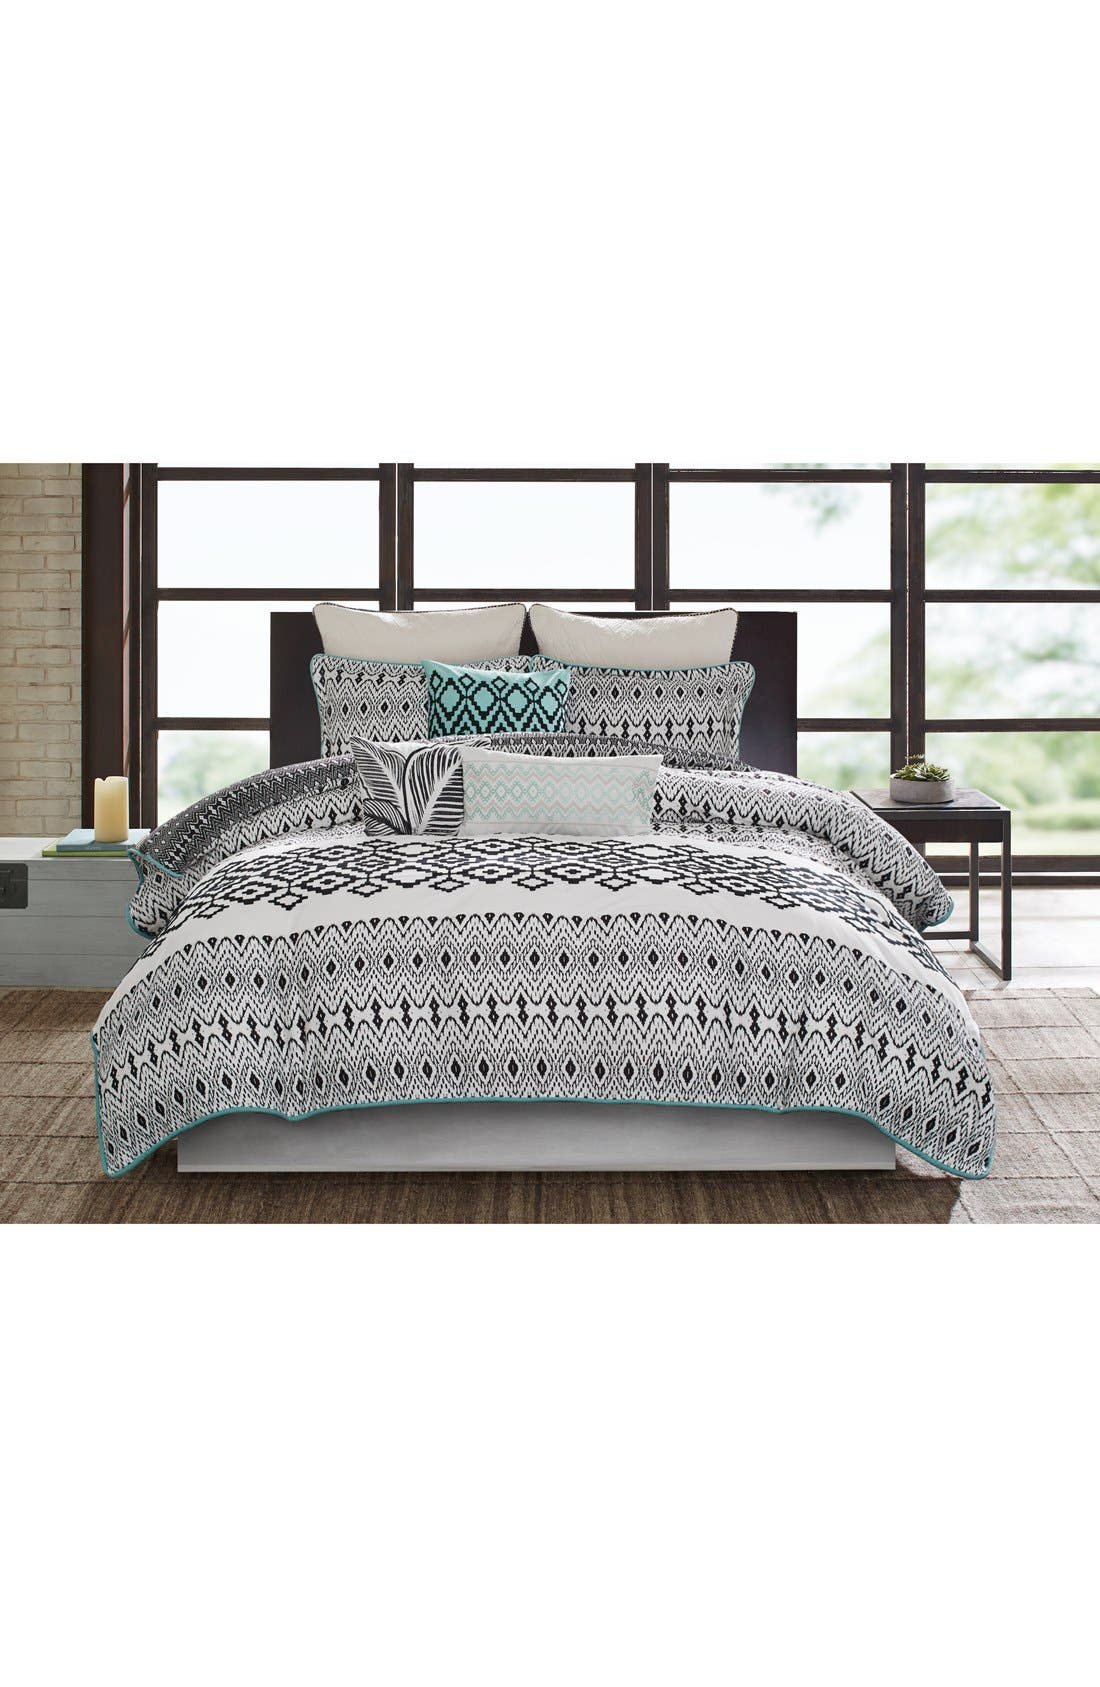 ECHO Kalea Reversible Duvet Cover & Sham Set